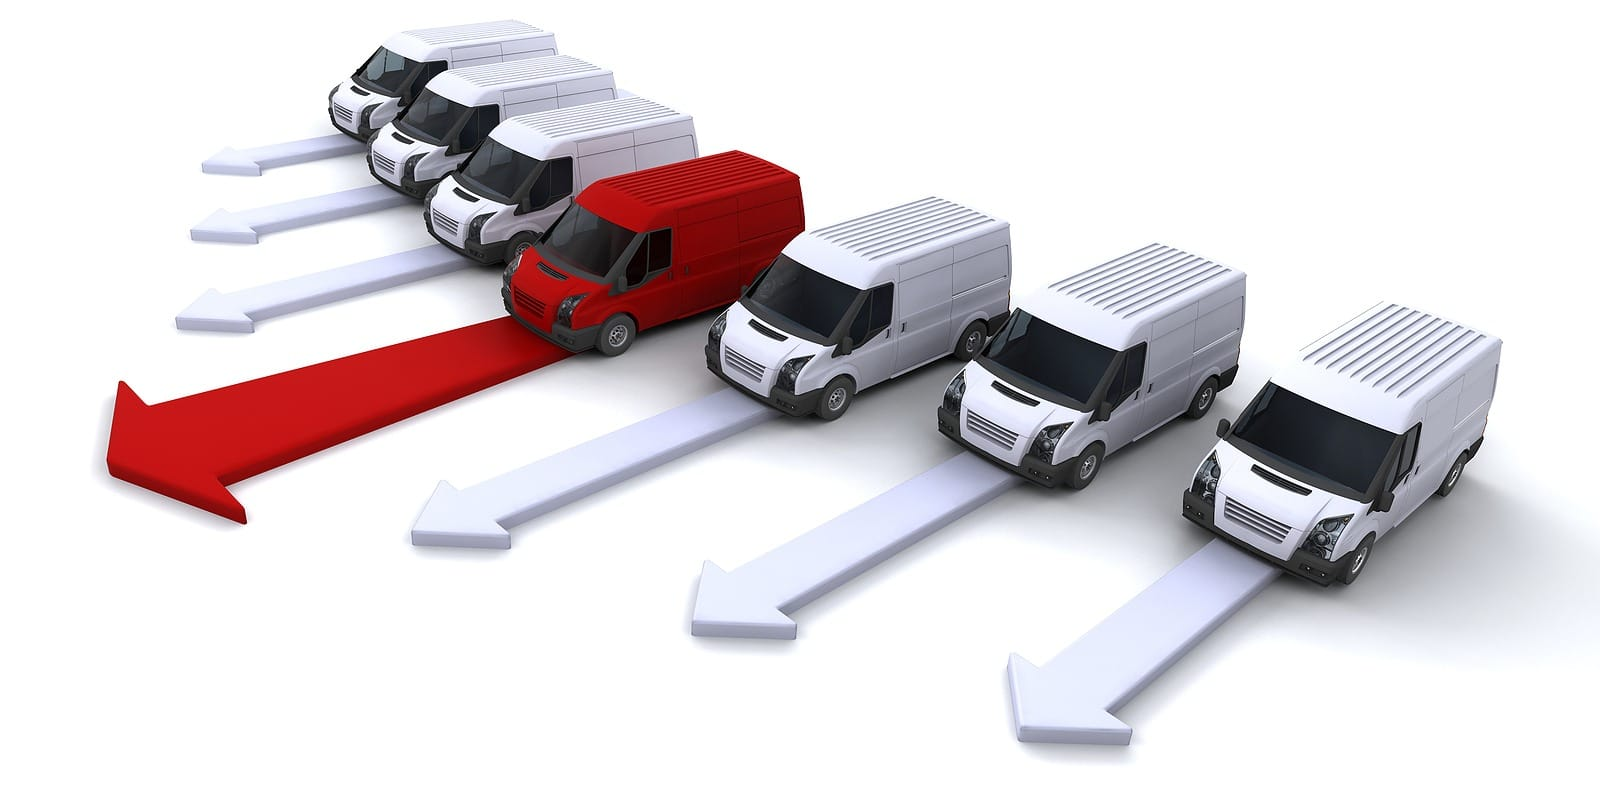 benefits of GPS tracking device - Increased Safety